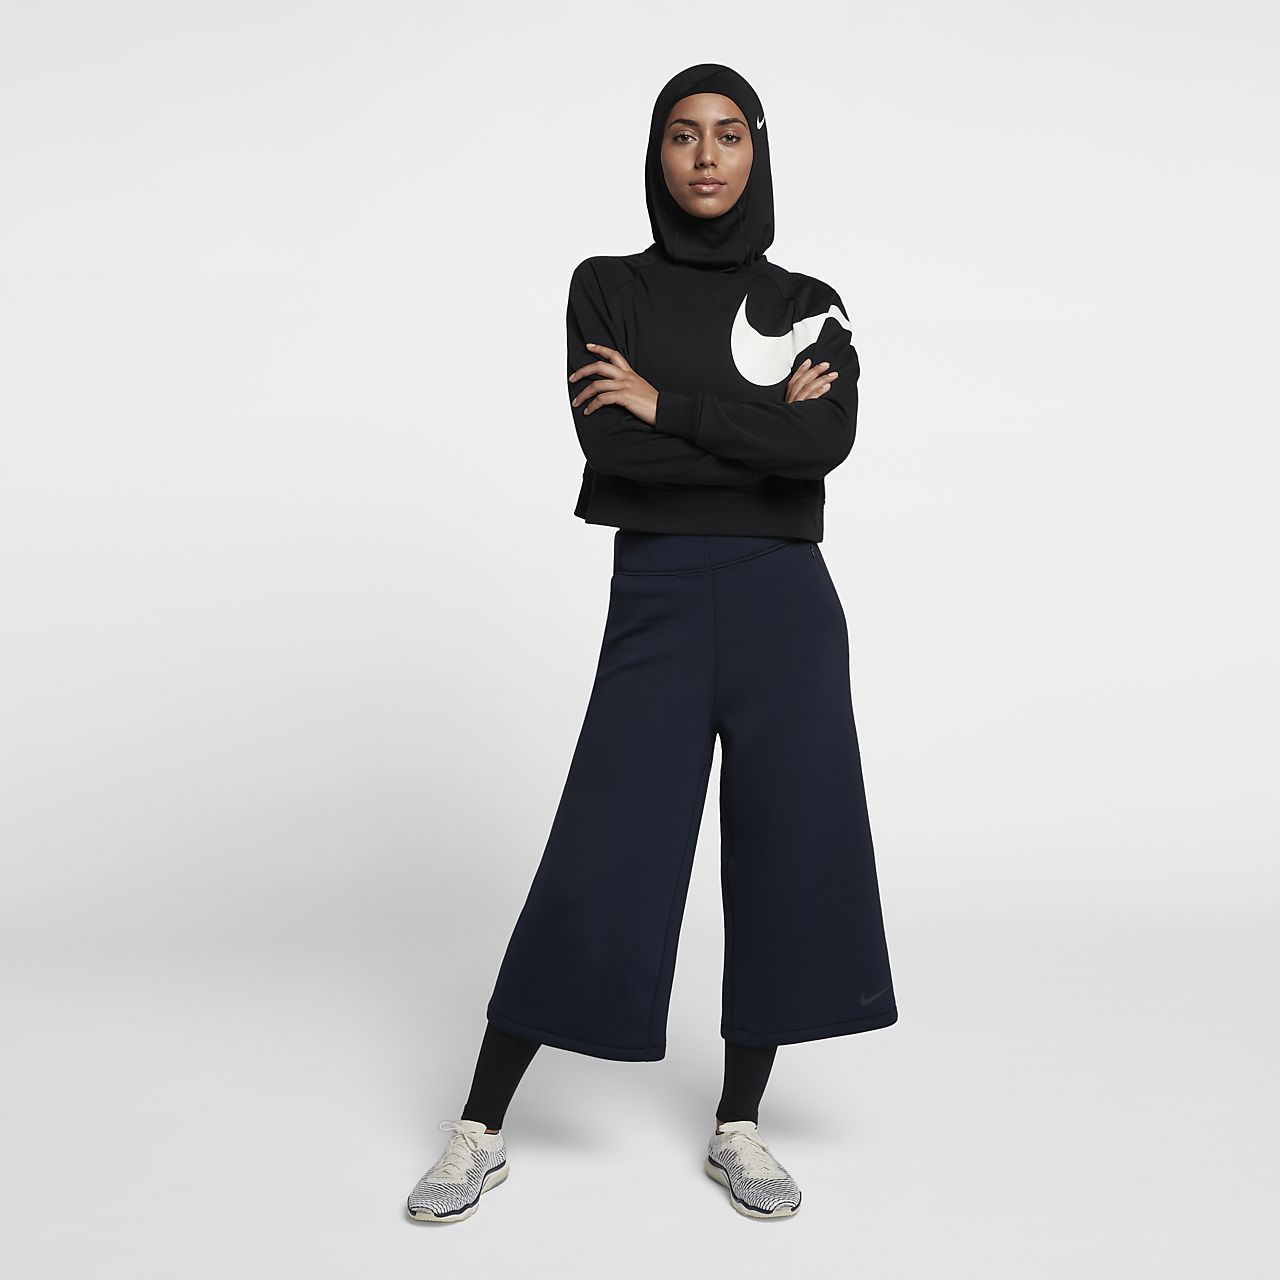 Low Resolution Nike Pro Women\u0027s Hijab Nike Pro Women\u0027s Hijab